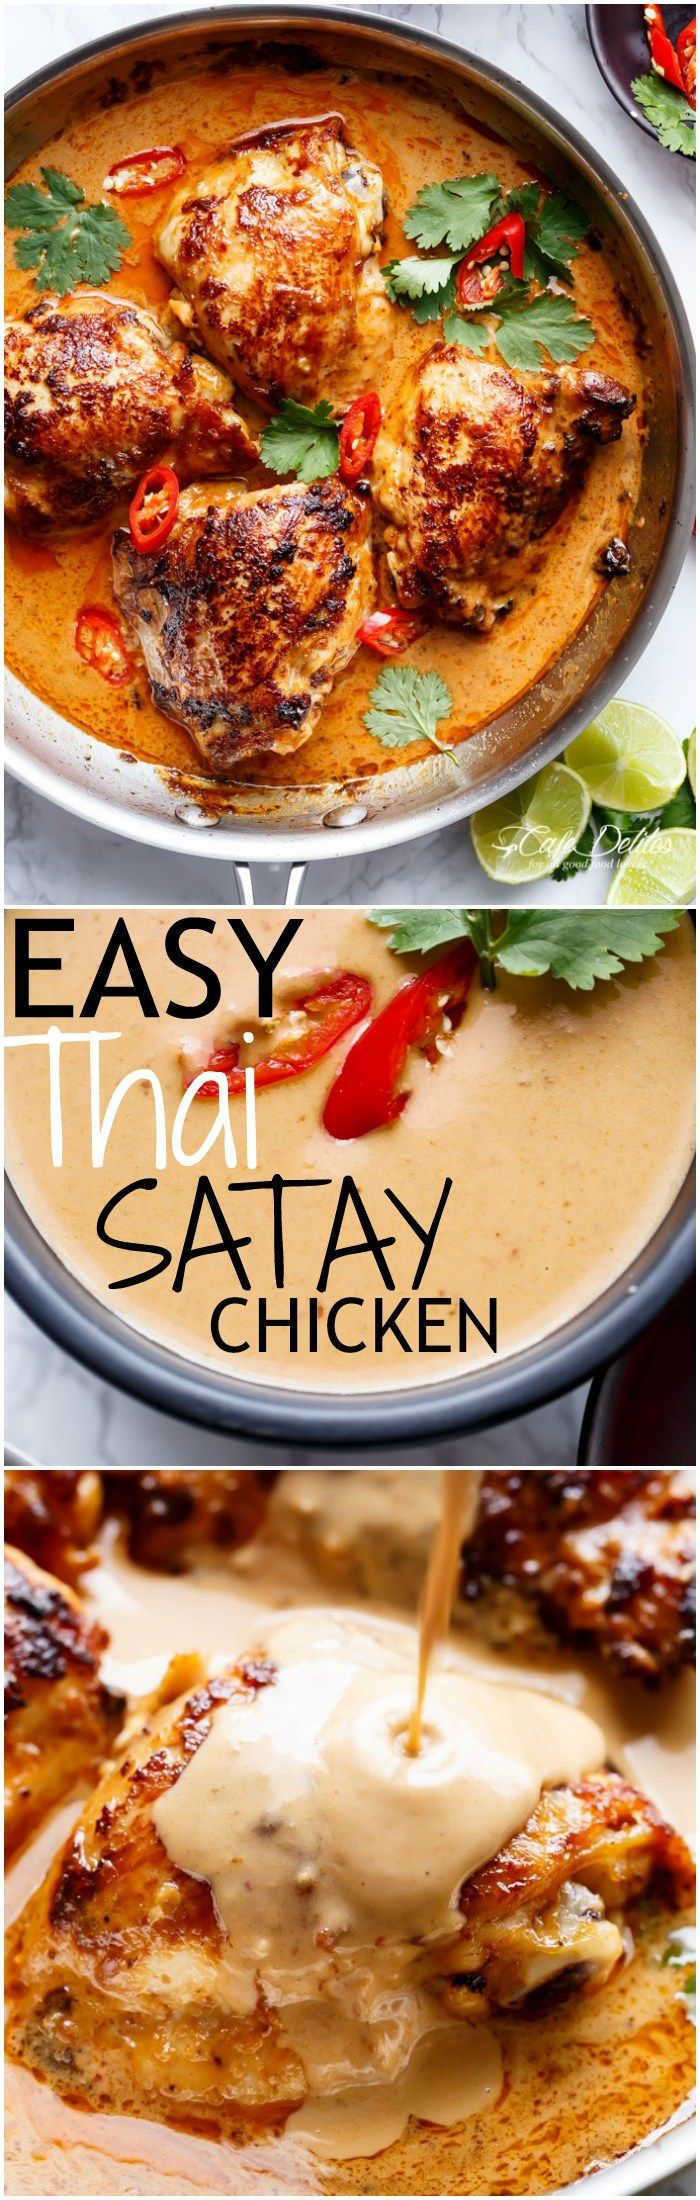 Thai Satay Chicken In A Creamy Peanut Sauce with a special ingredient that makes this satay something spectacular in minutes! | cafedelites.com